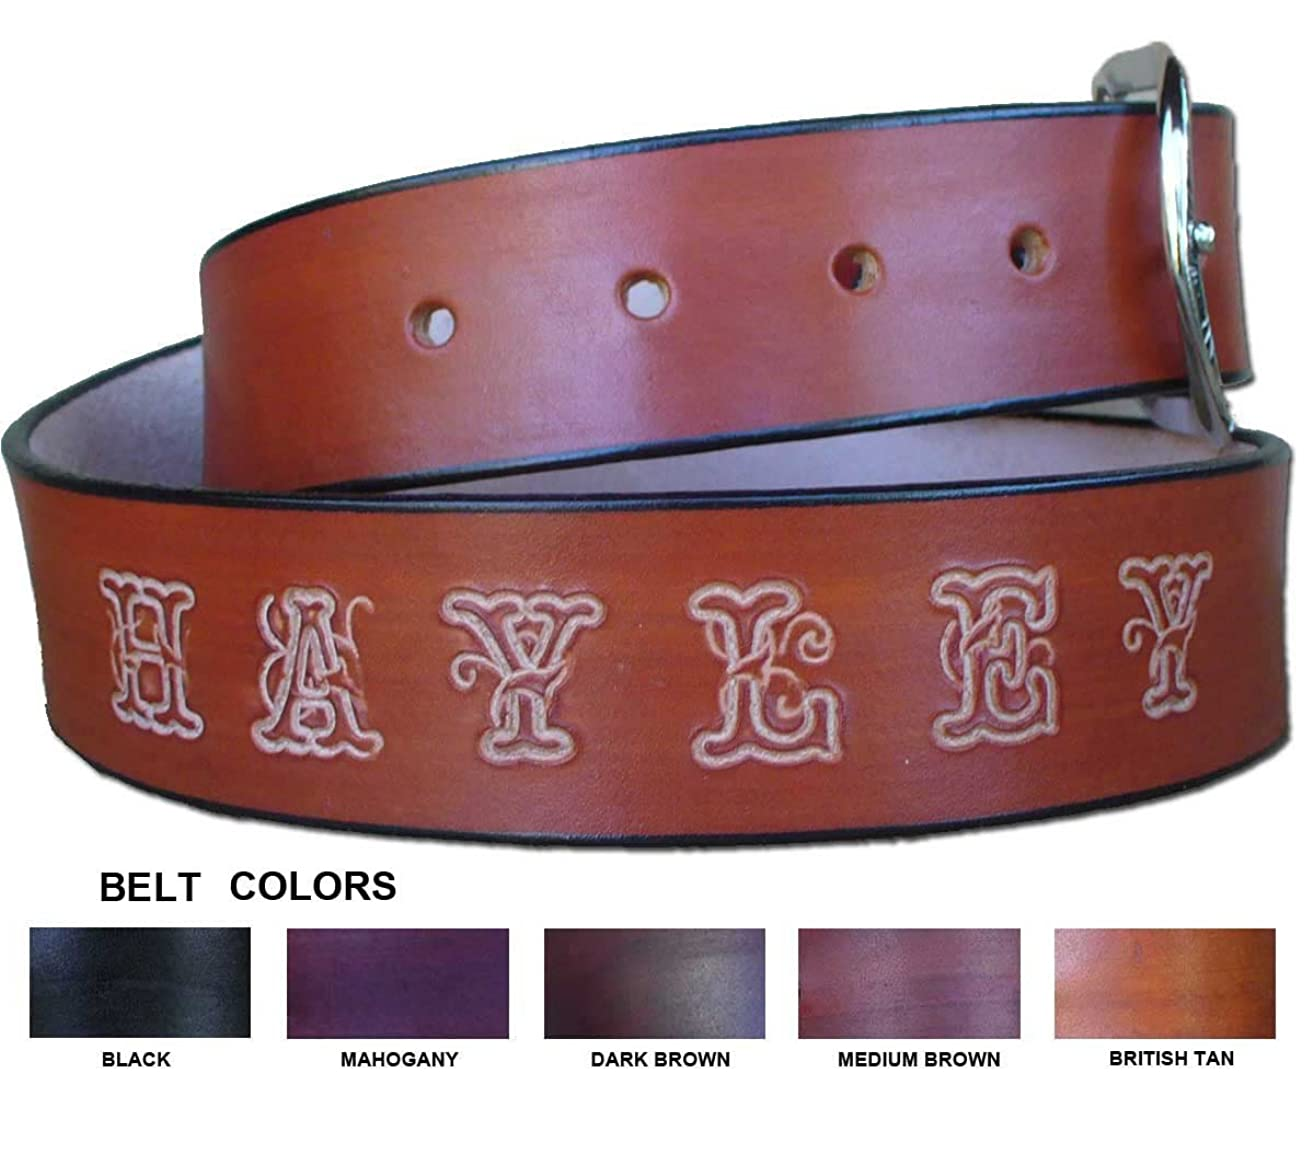 Personalized Leather Belt - Custom made Leather Belt Personalized with Your Name/Text - Made in USA by Pitka Leather